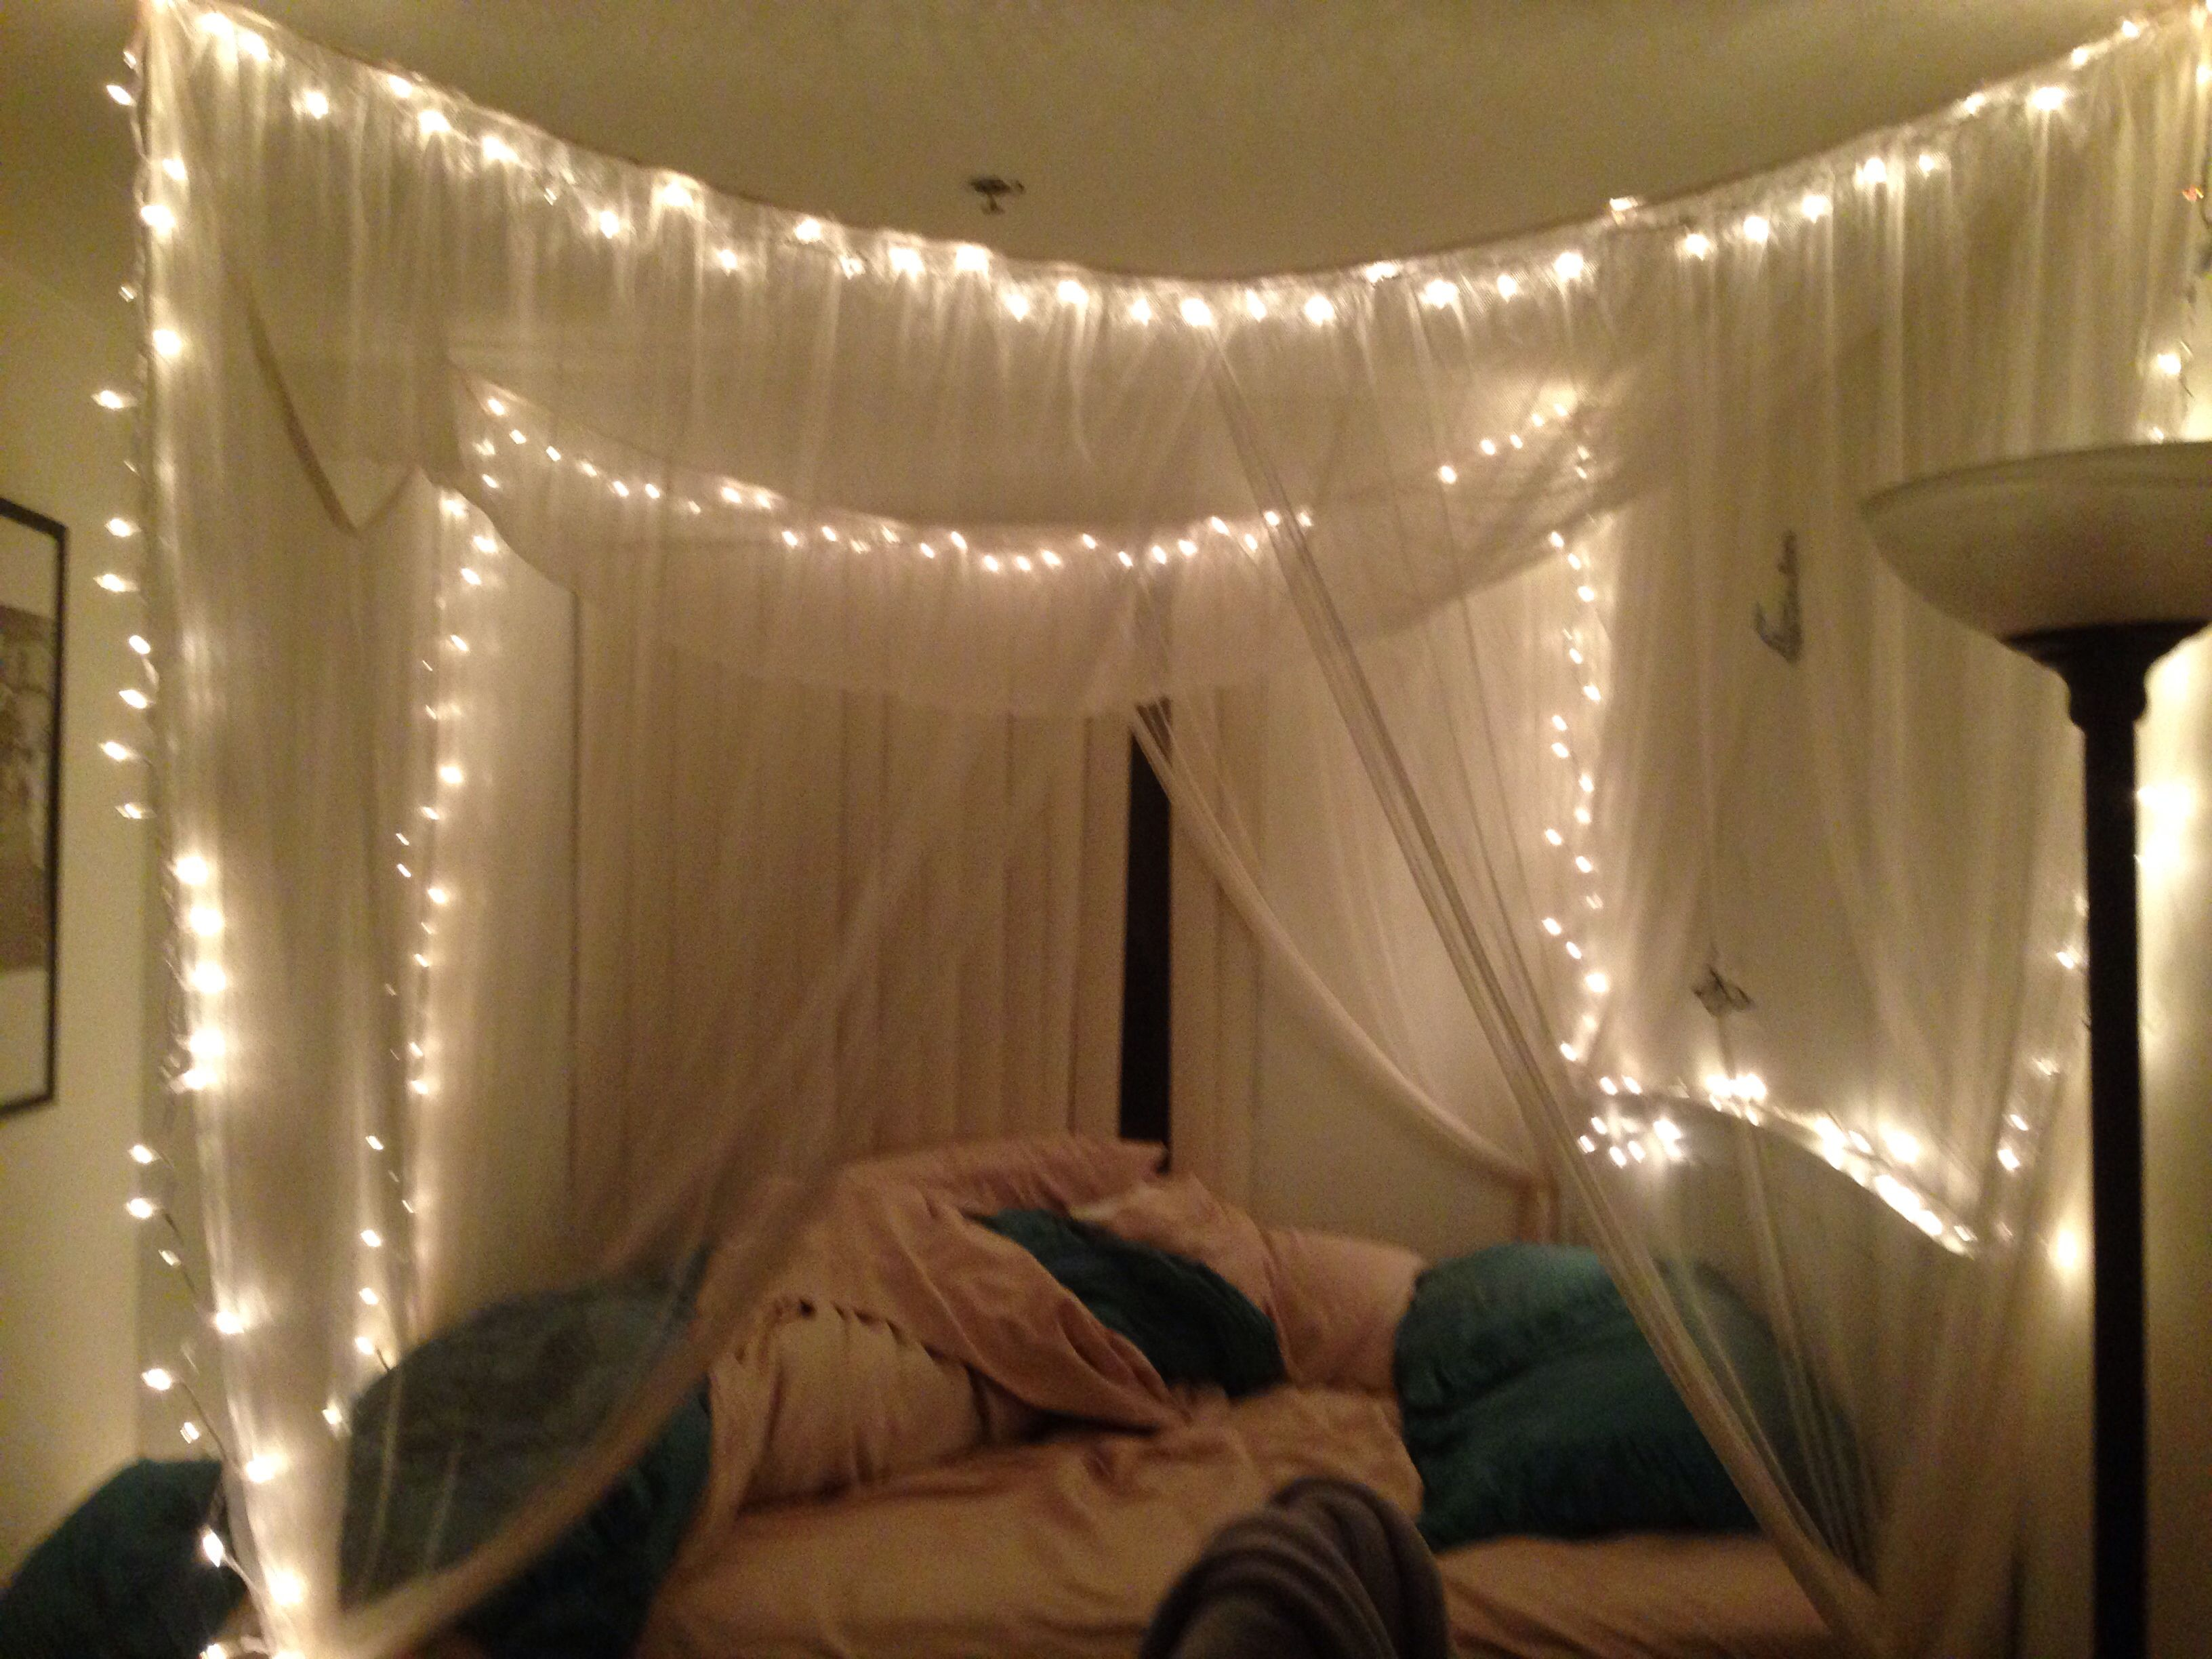 Canopy bed curtains with lights - Twinkle Lights In Canopy Bed